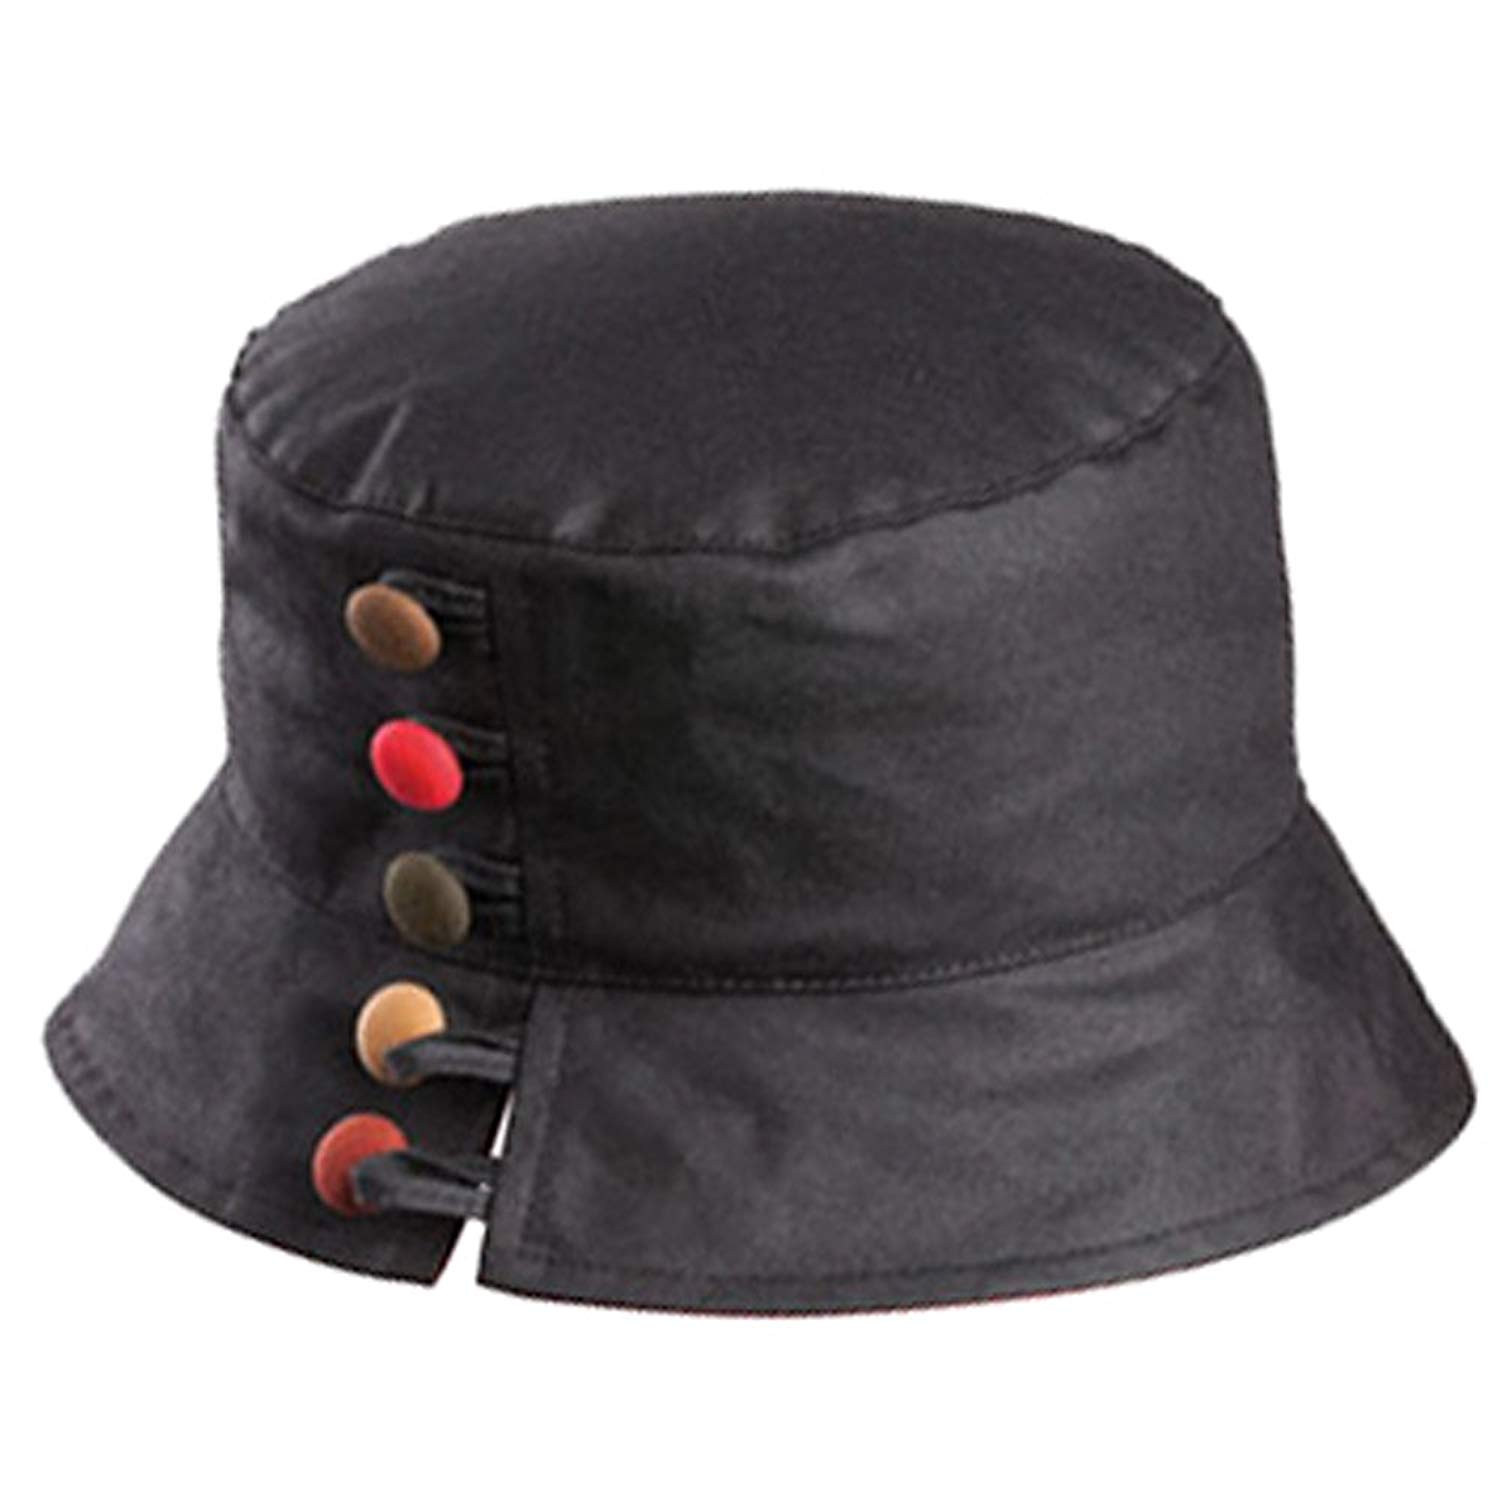 dadc4e7347d Get Quotations · Olney Olivia Ladies Wax Waterproof Hat